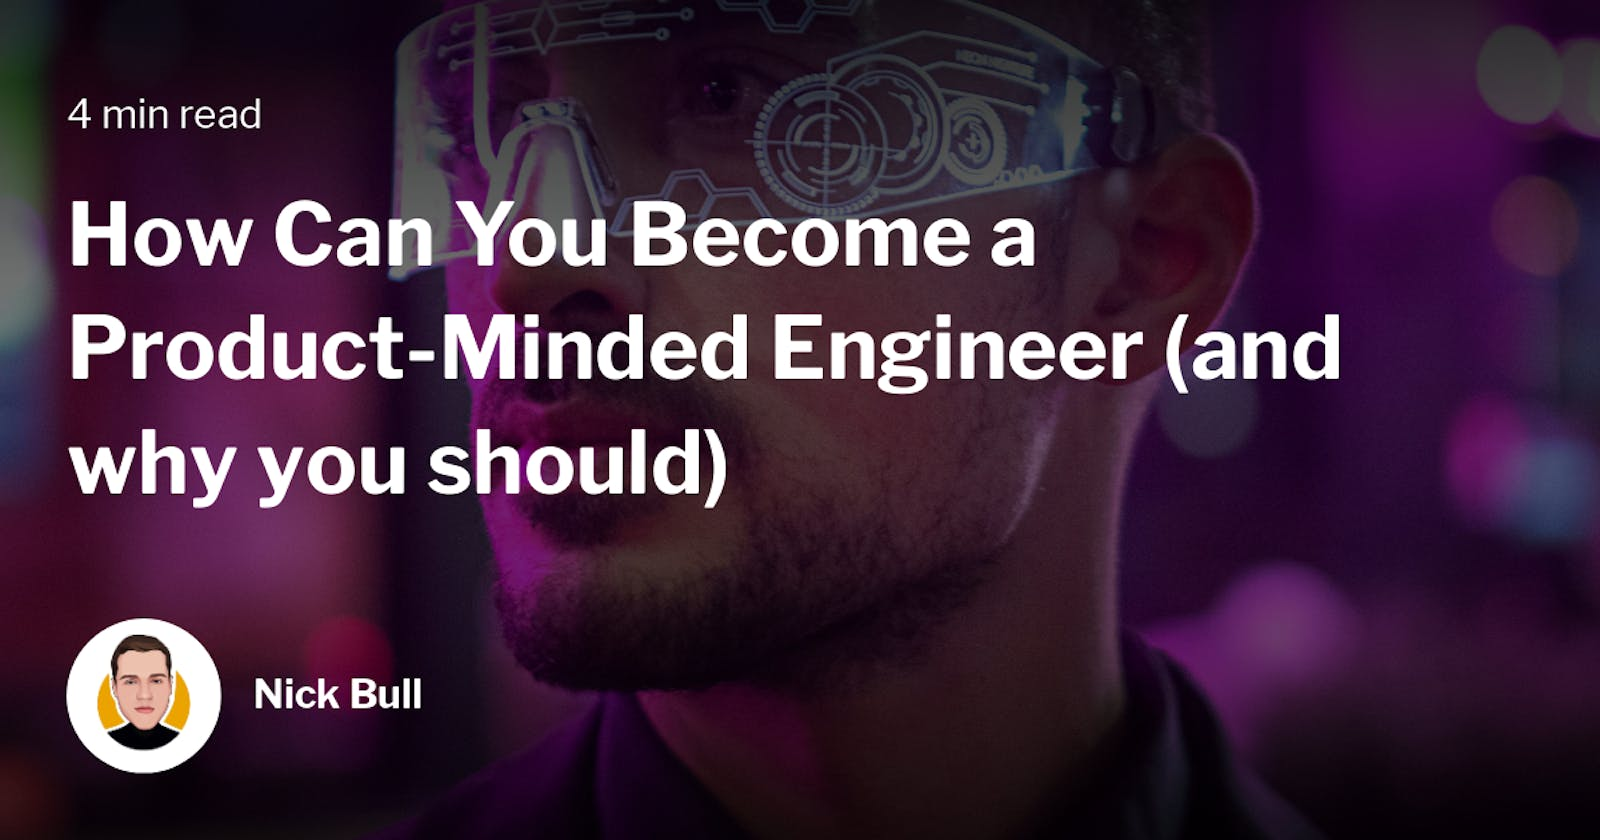 How Can You Become a Product-Minded Engineer